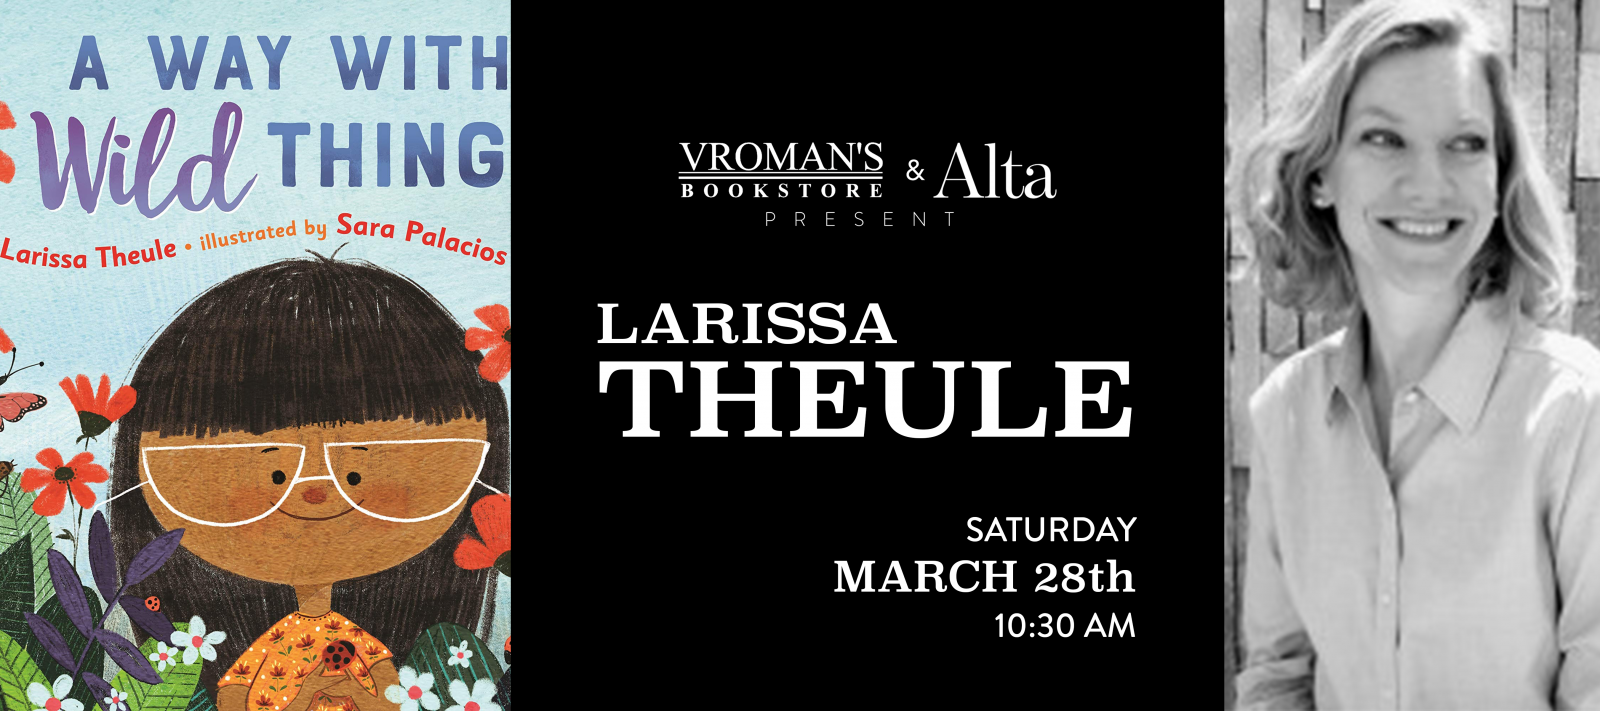 Larissa Theule book signing on Saturday, March 28, at 10:30am